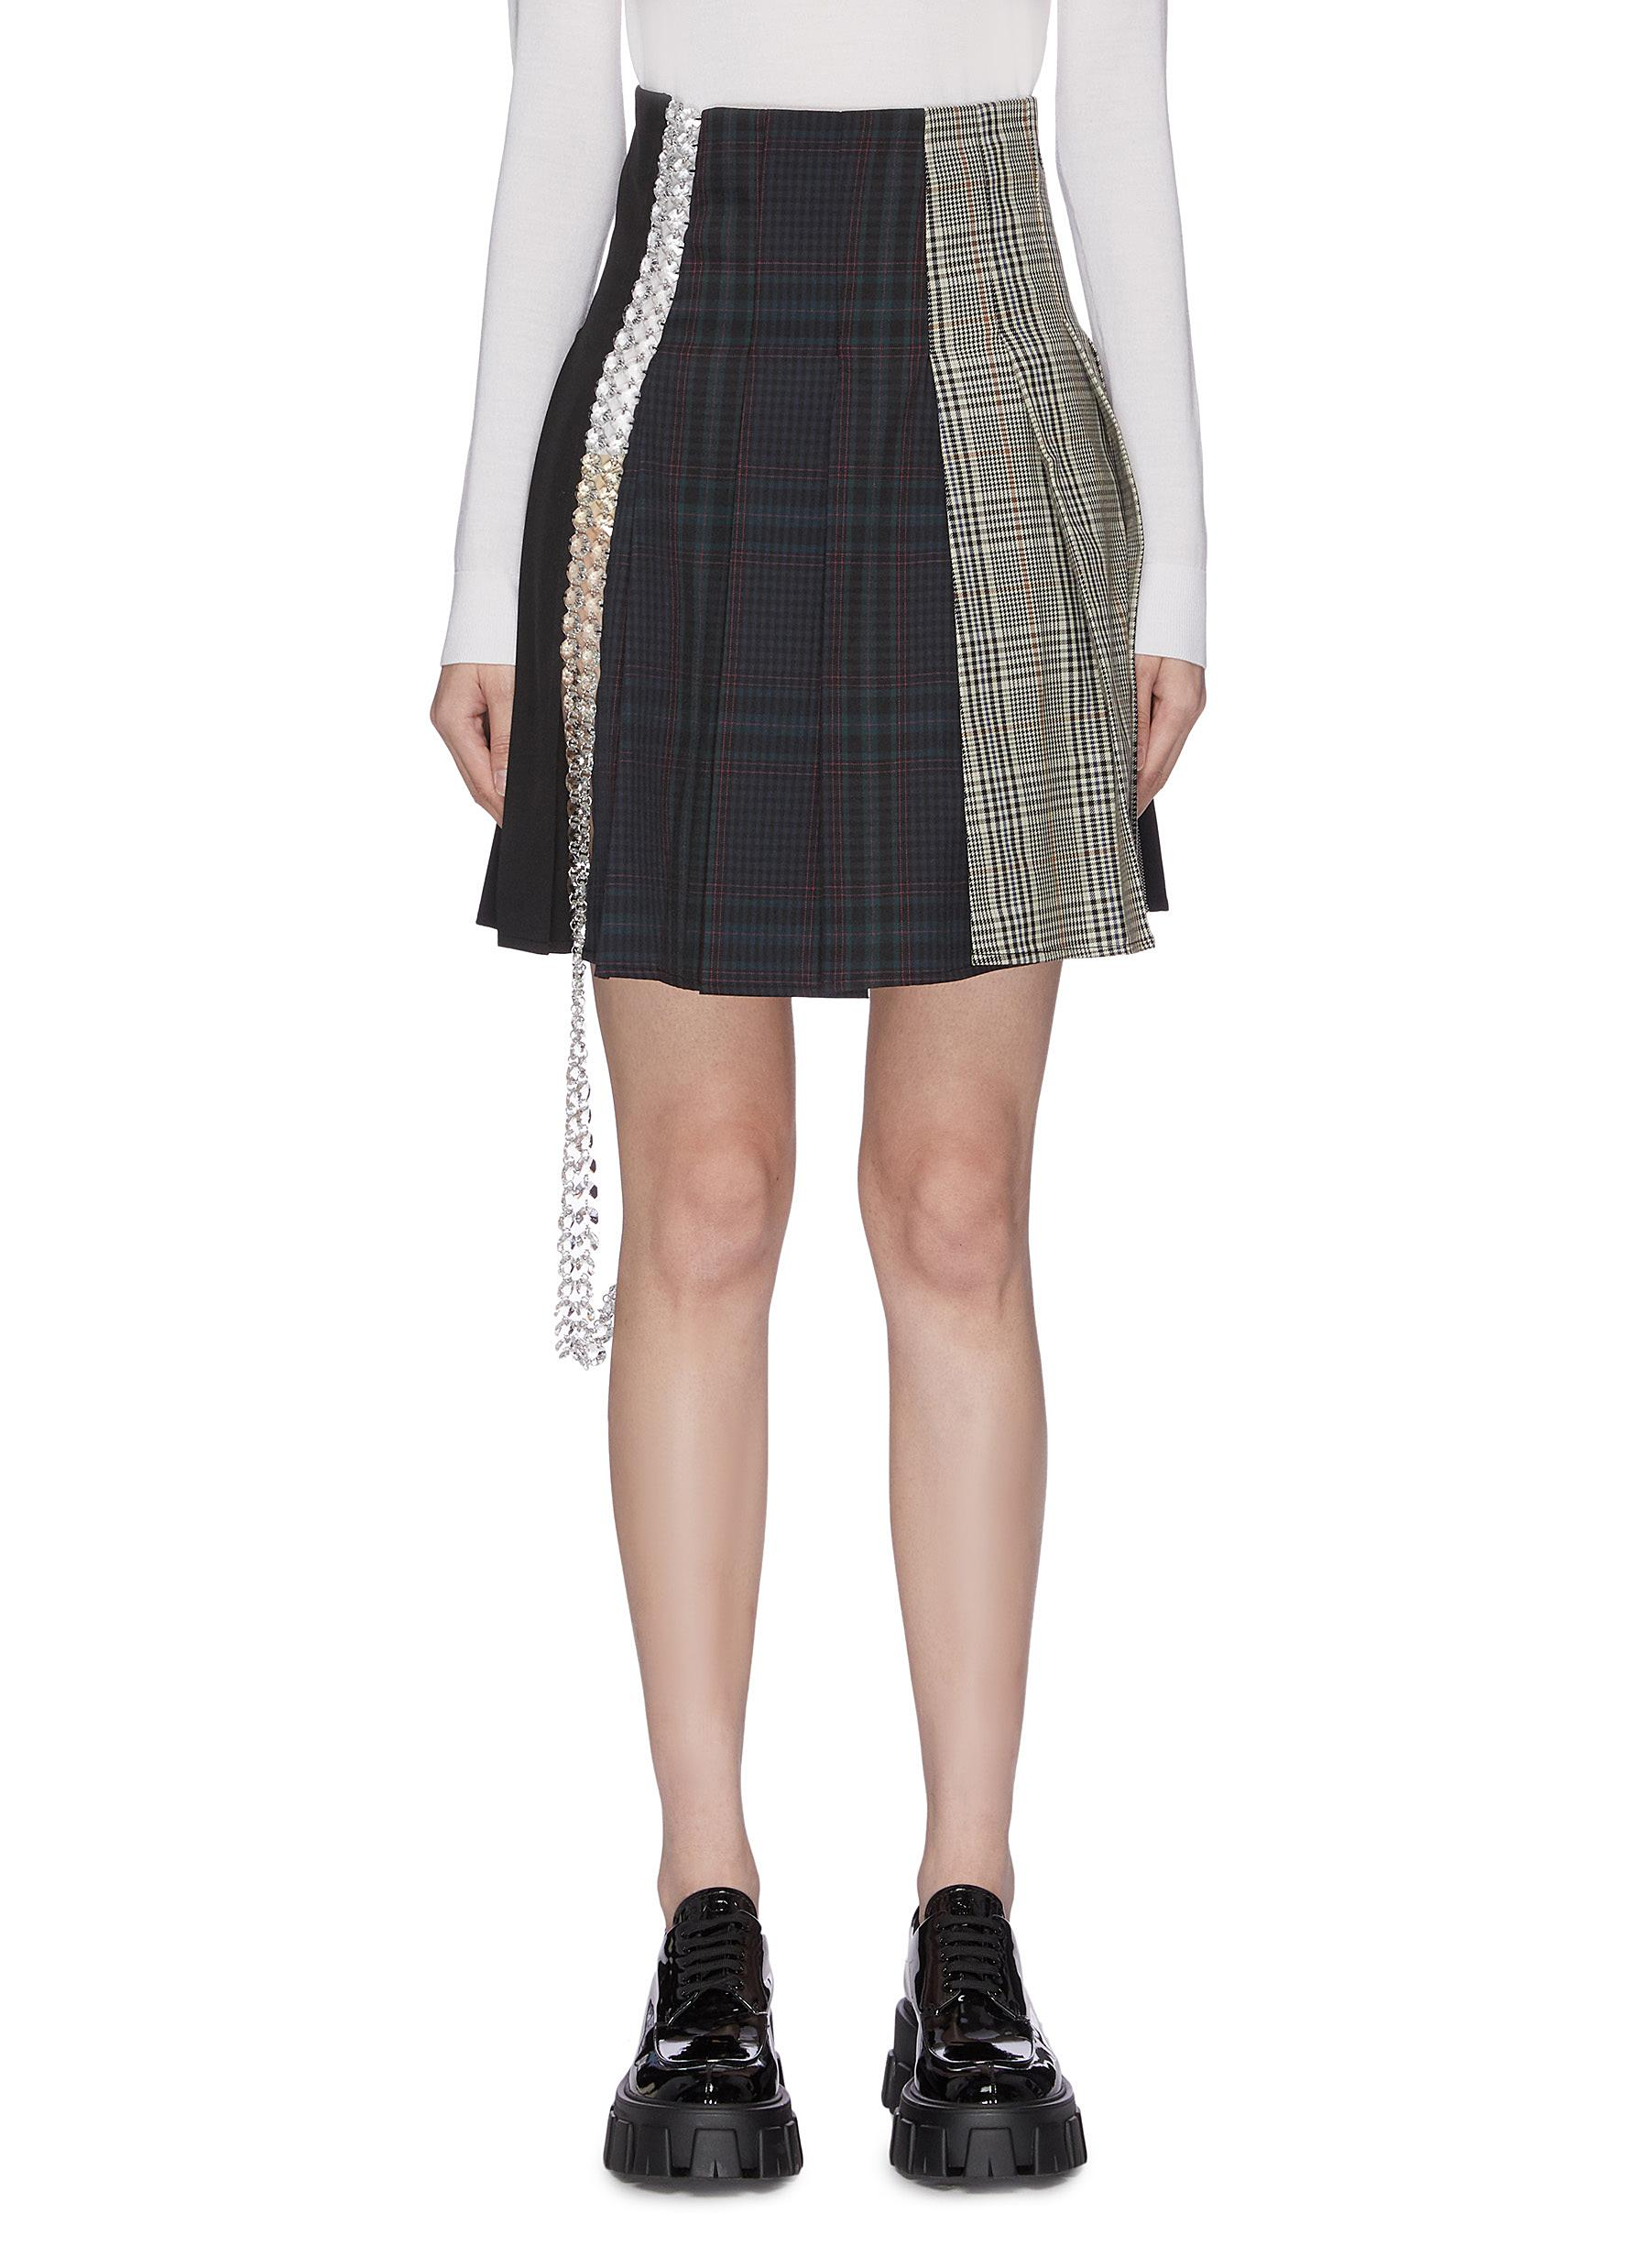 Check plaid panelled embellished pleat mini skirt by Märchen